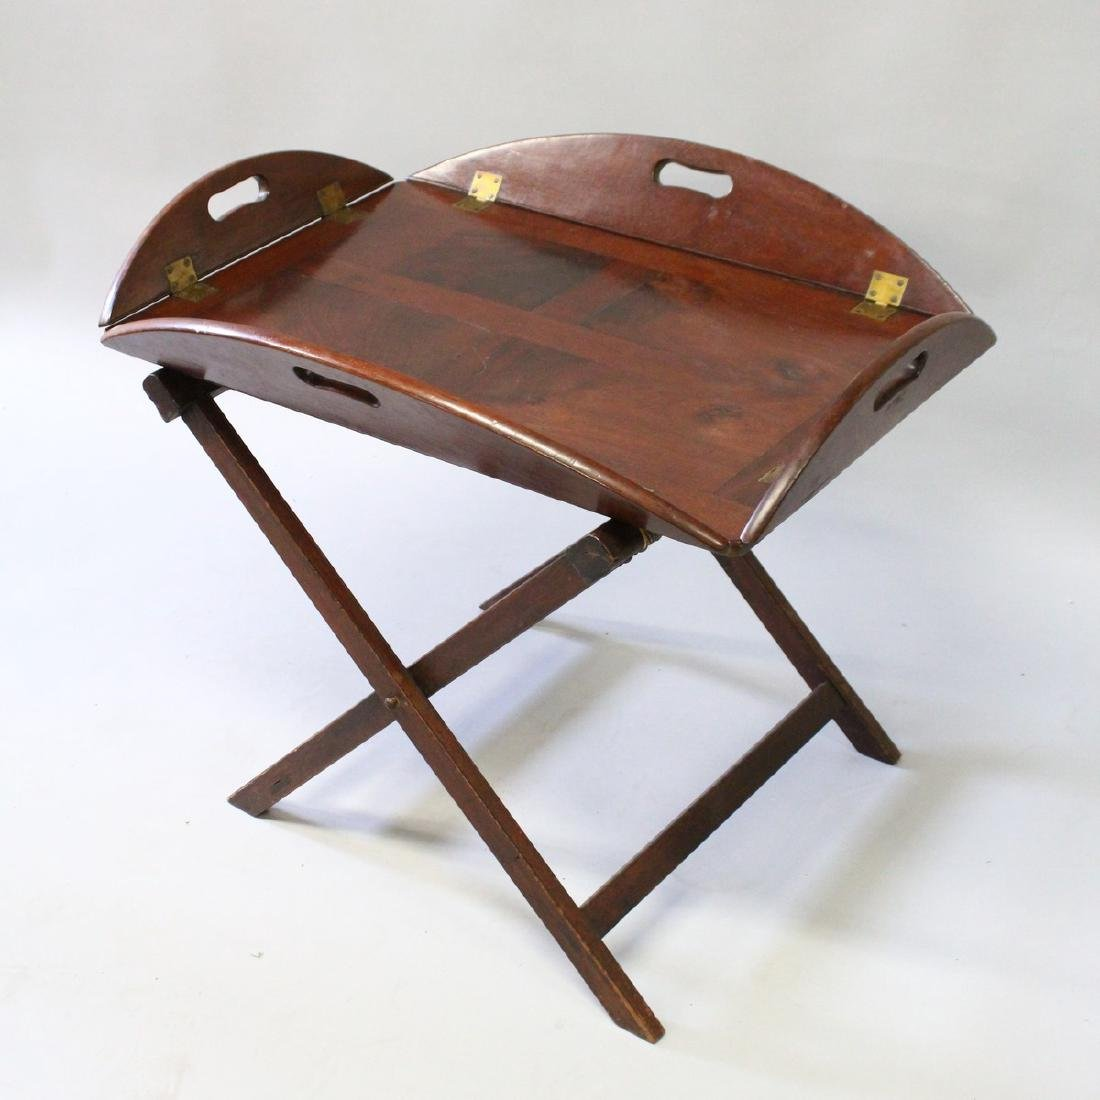 A BUTLER'S 19th CENTURY MAHOGANY TRAY ON STAND with